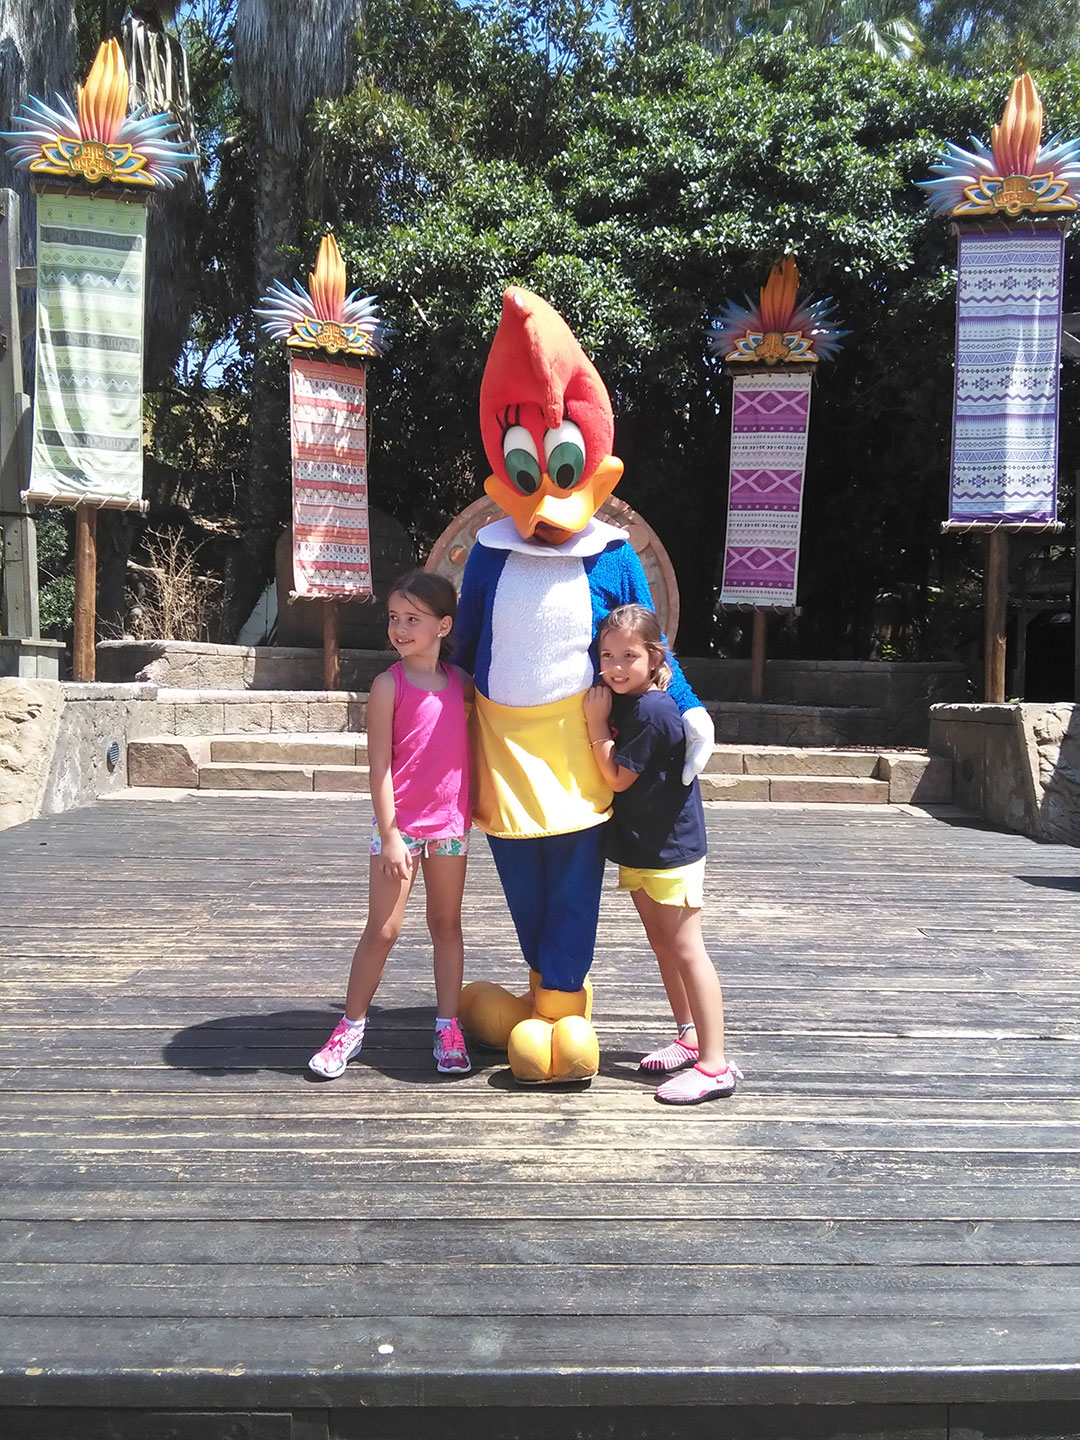 160702-portaventura-sequiol-2-123512